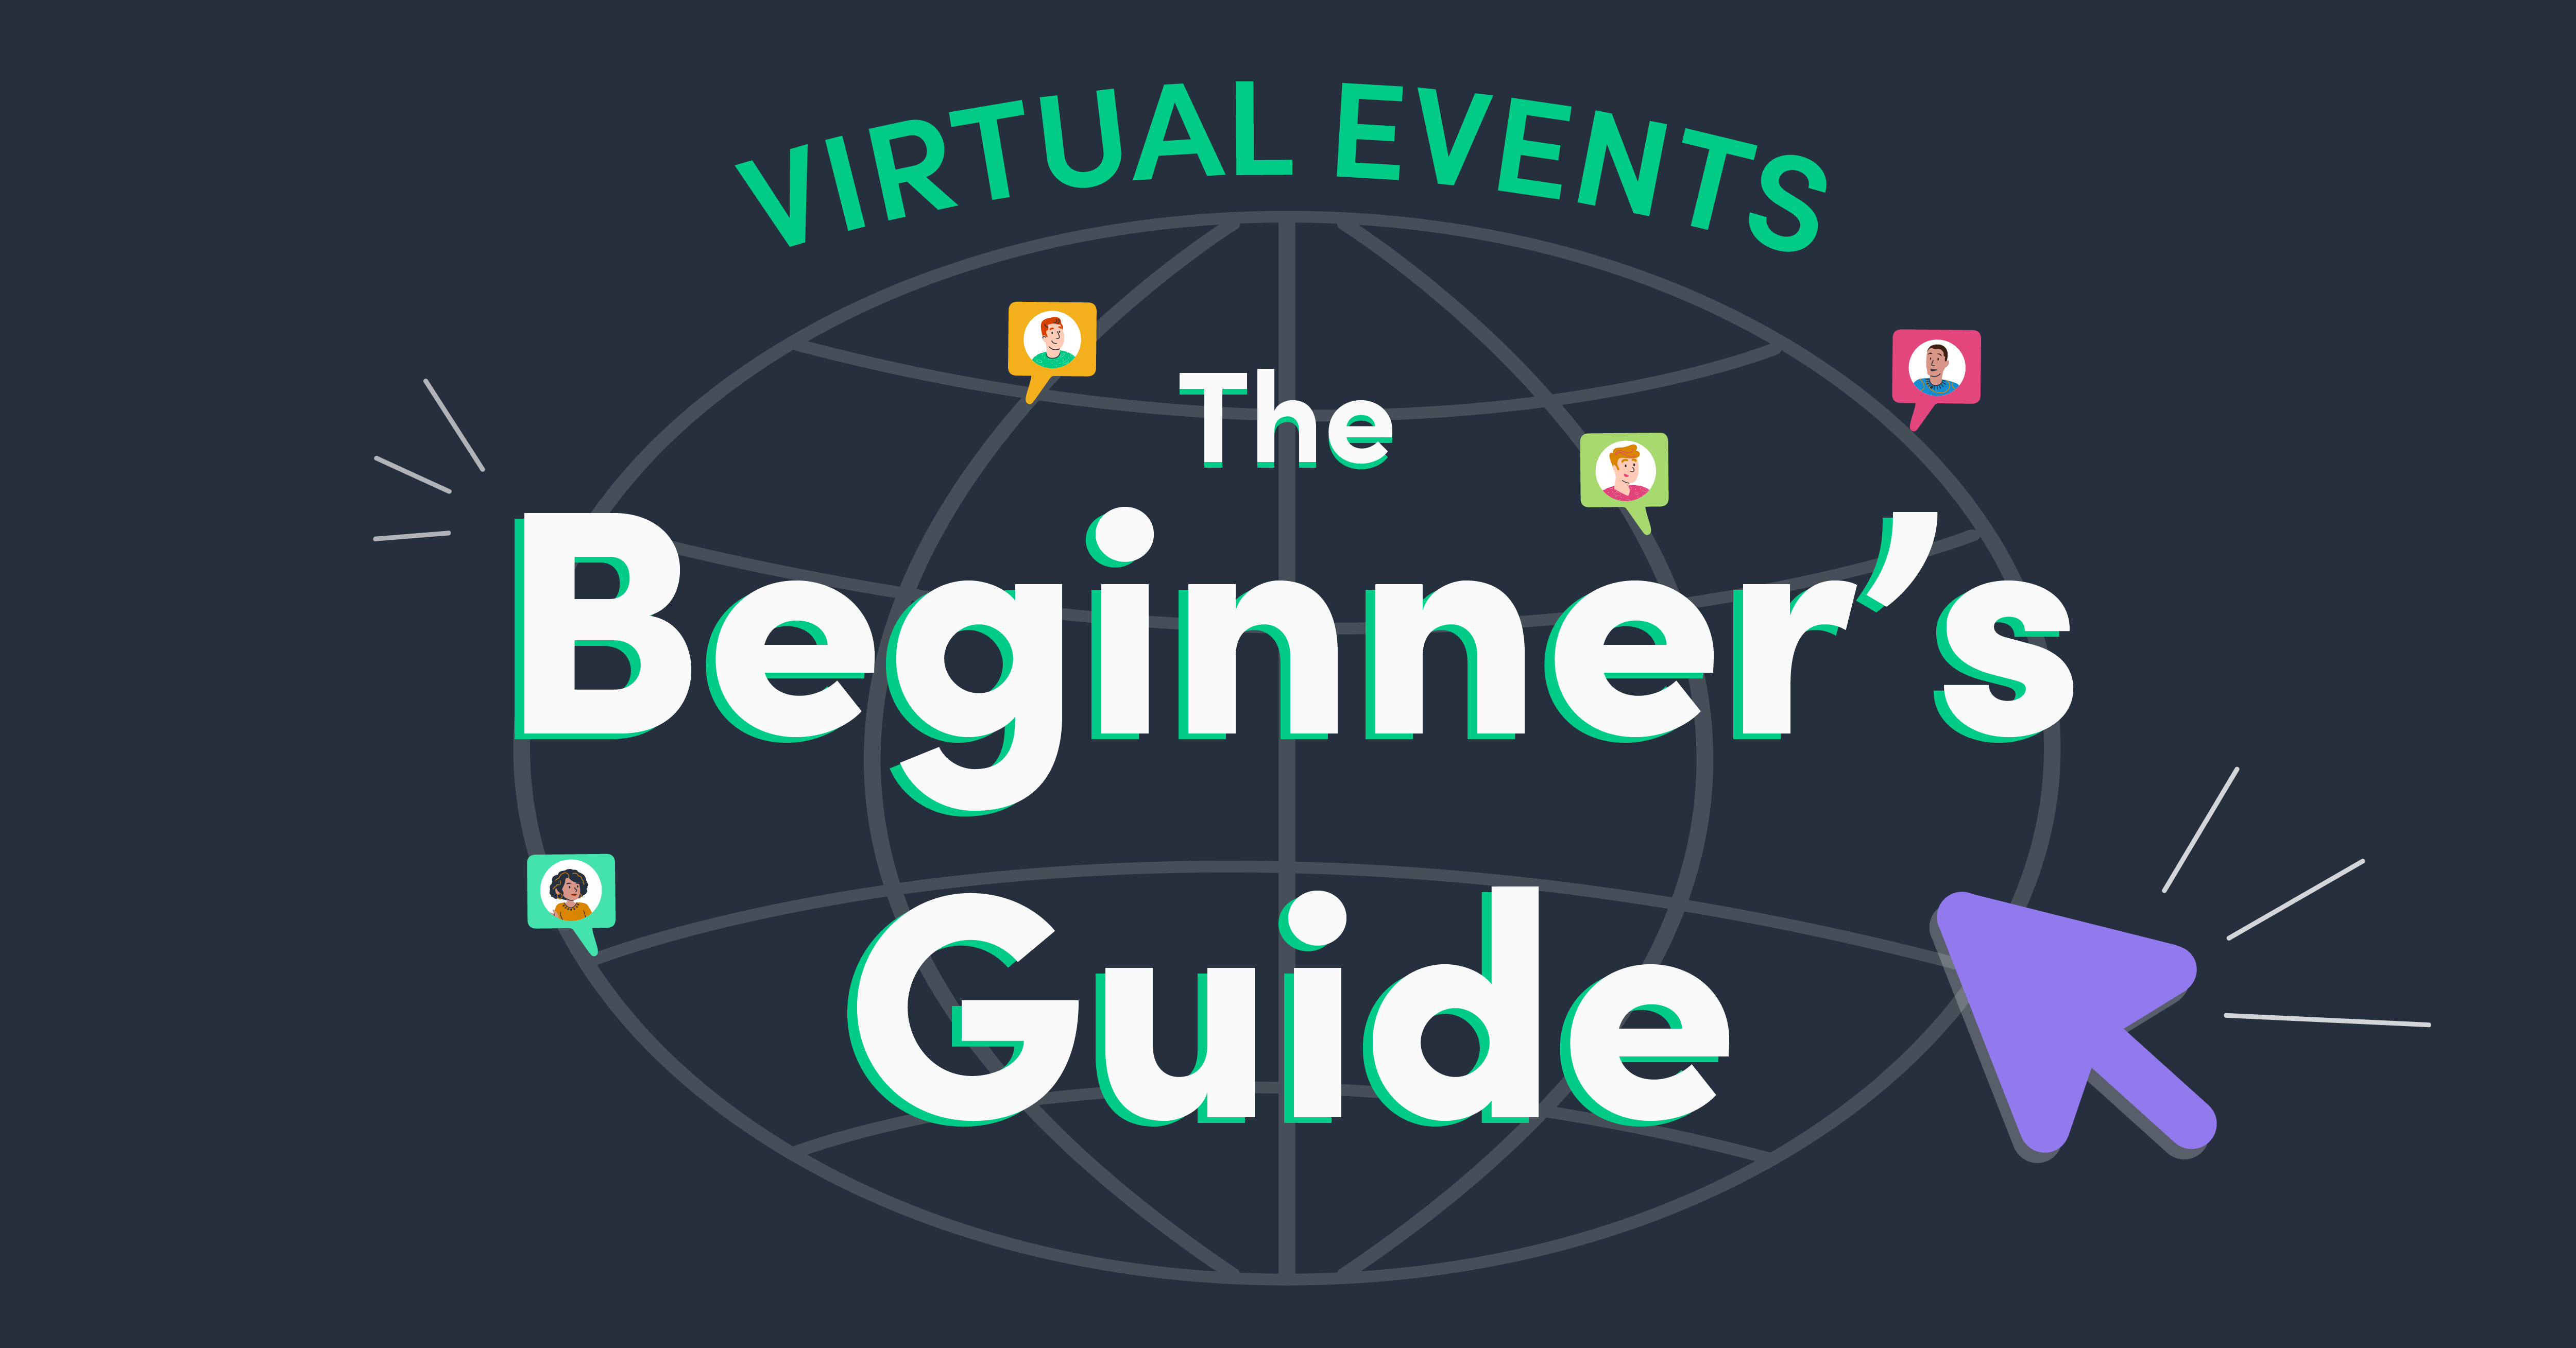 Virtual Events: The Beginner's Guide